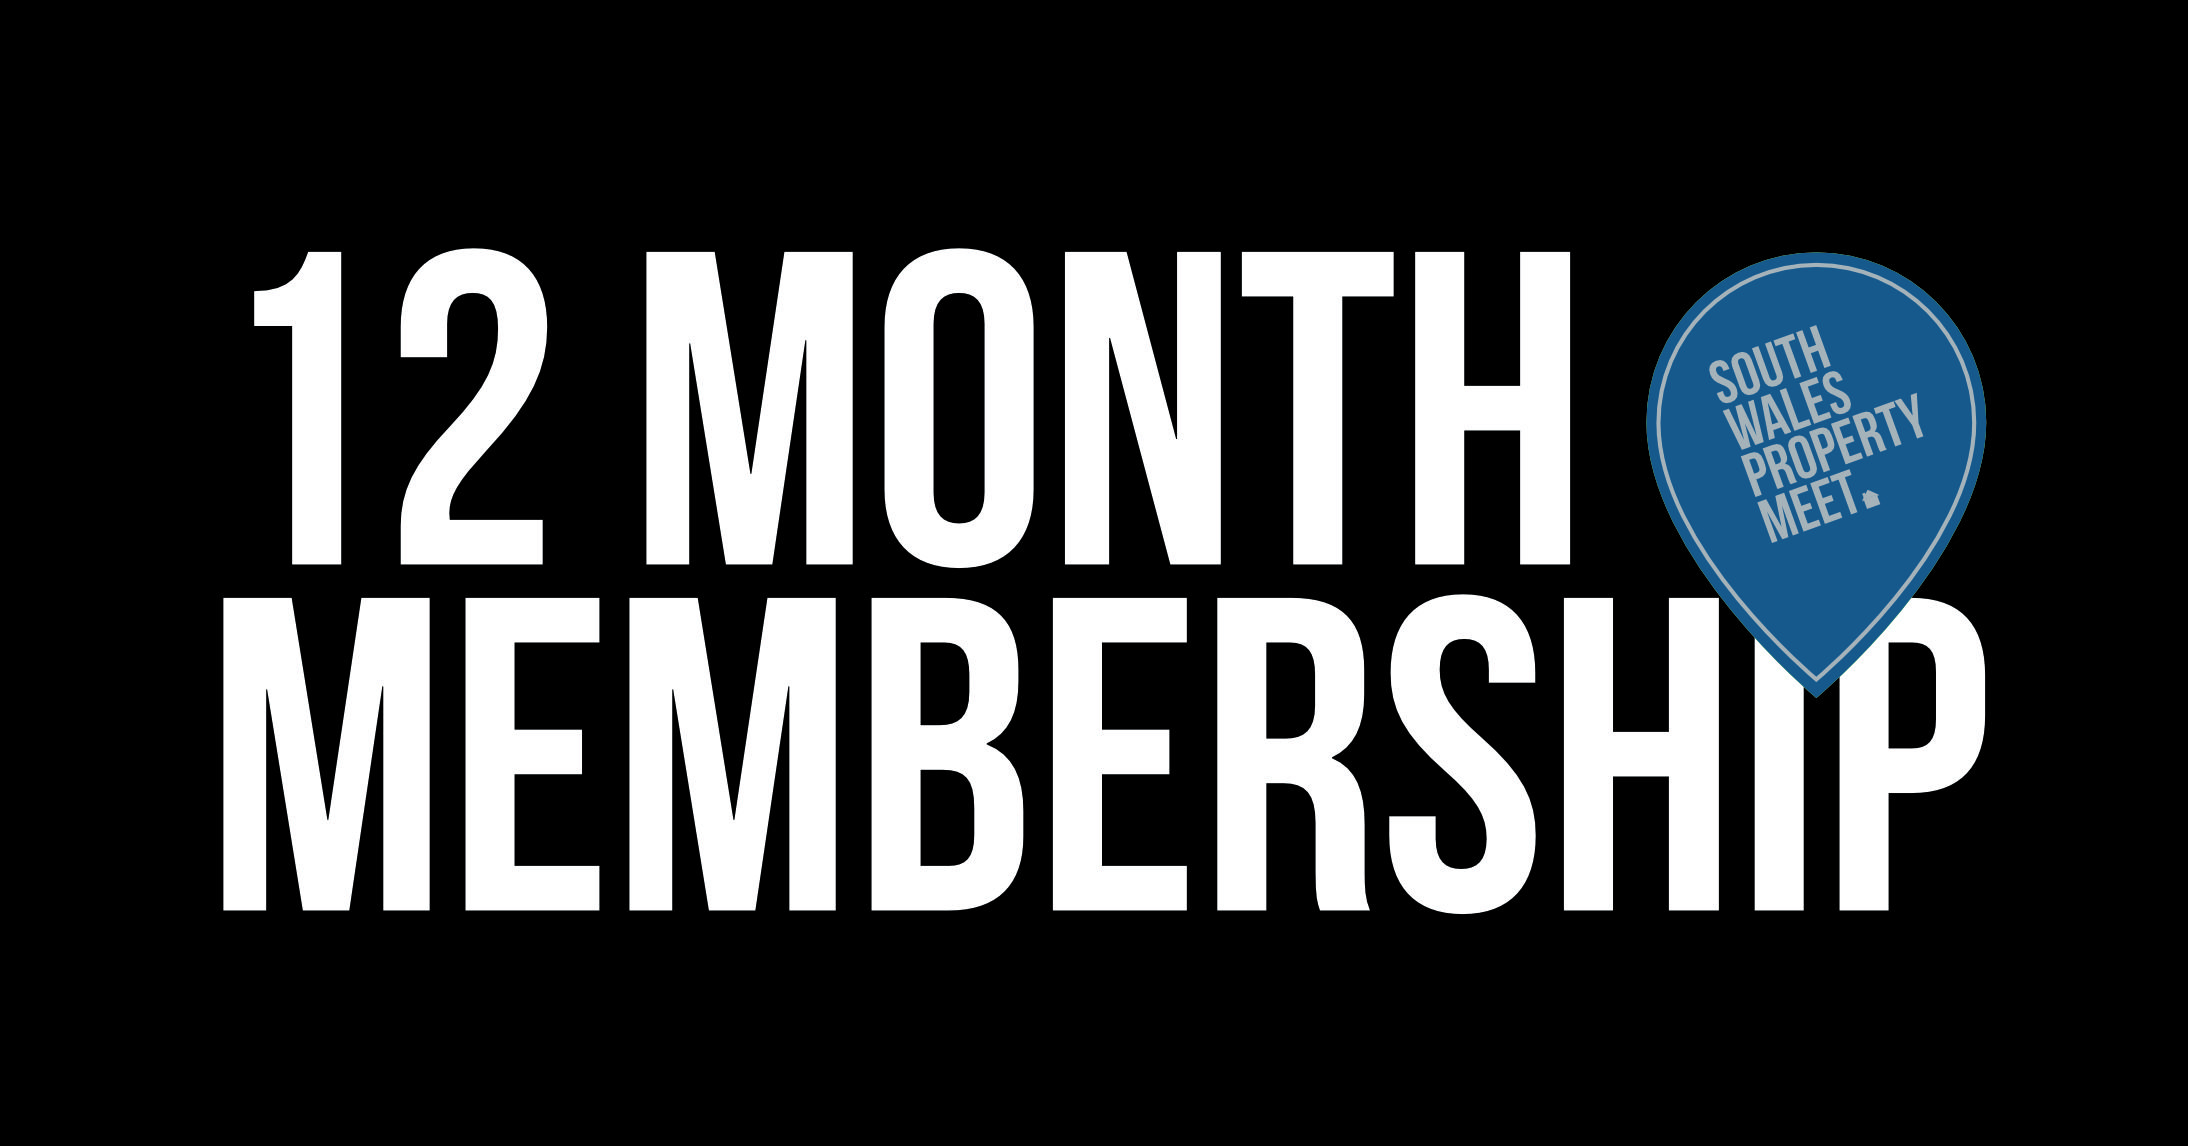 South Wales Property Meet 12 Month Membership